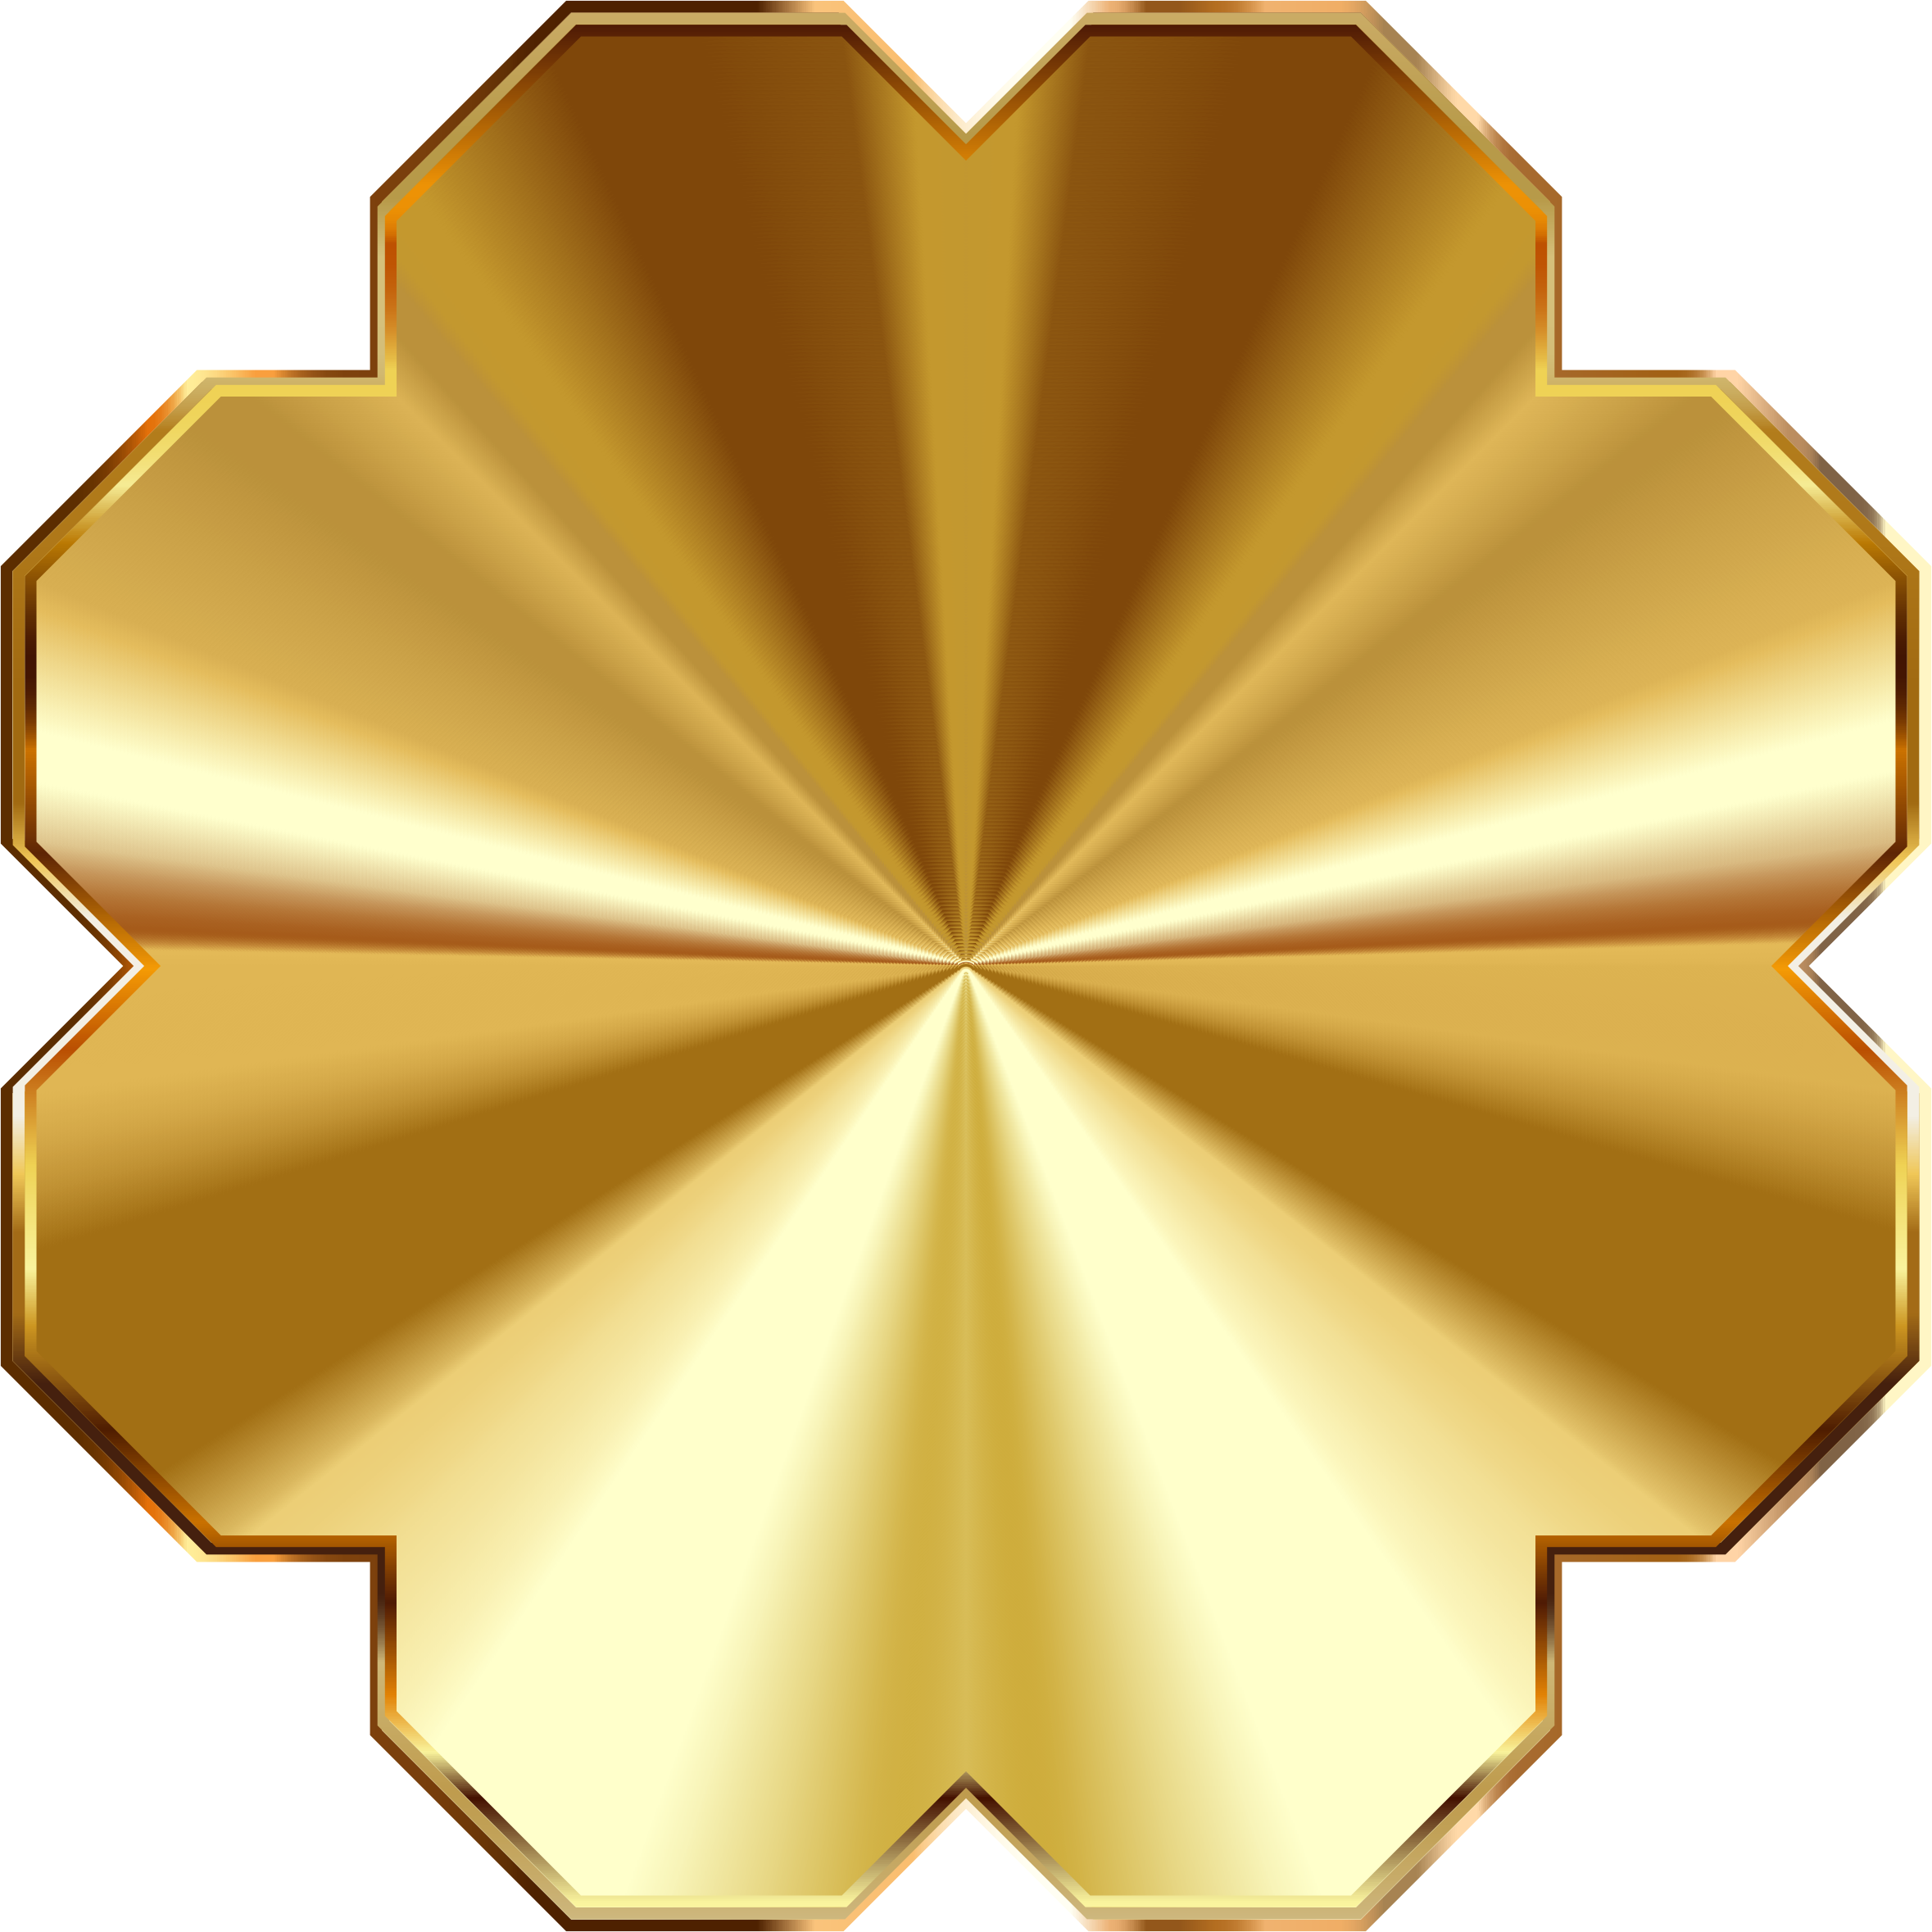 Gold background png. Plaque no icons free